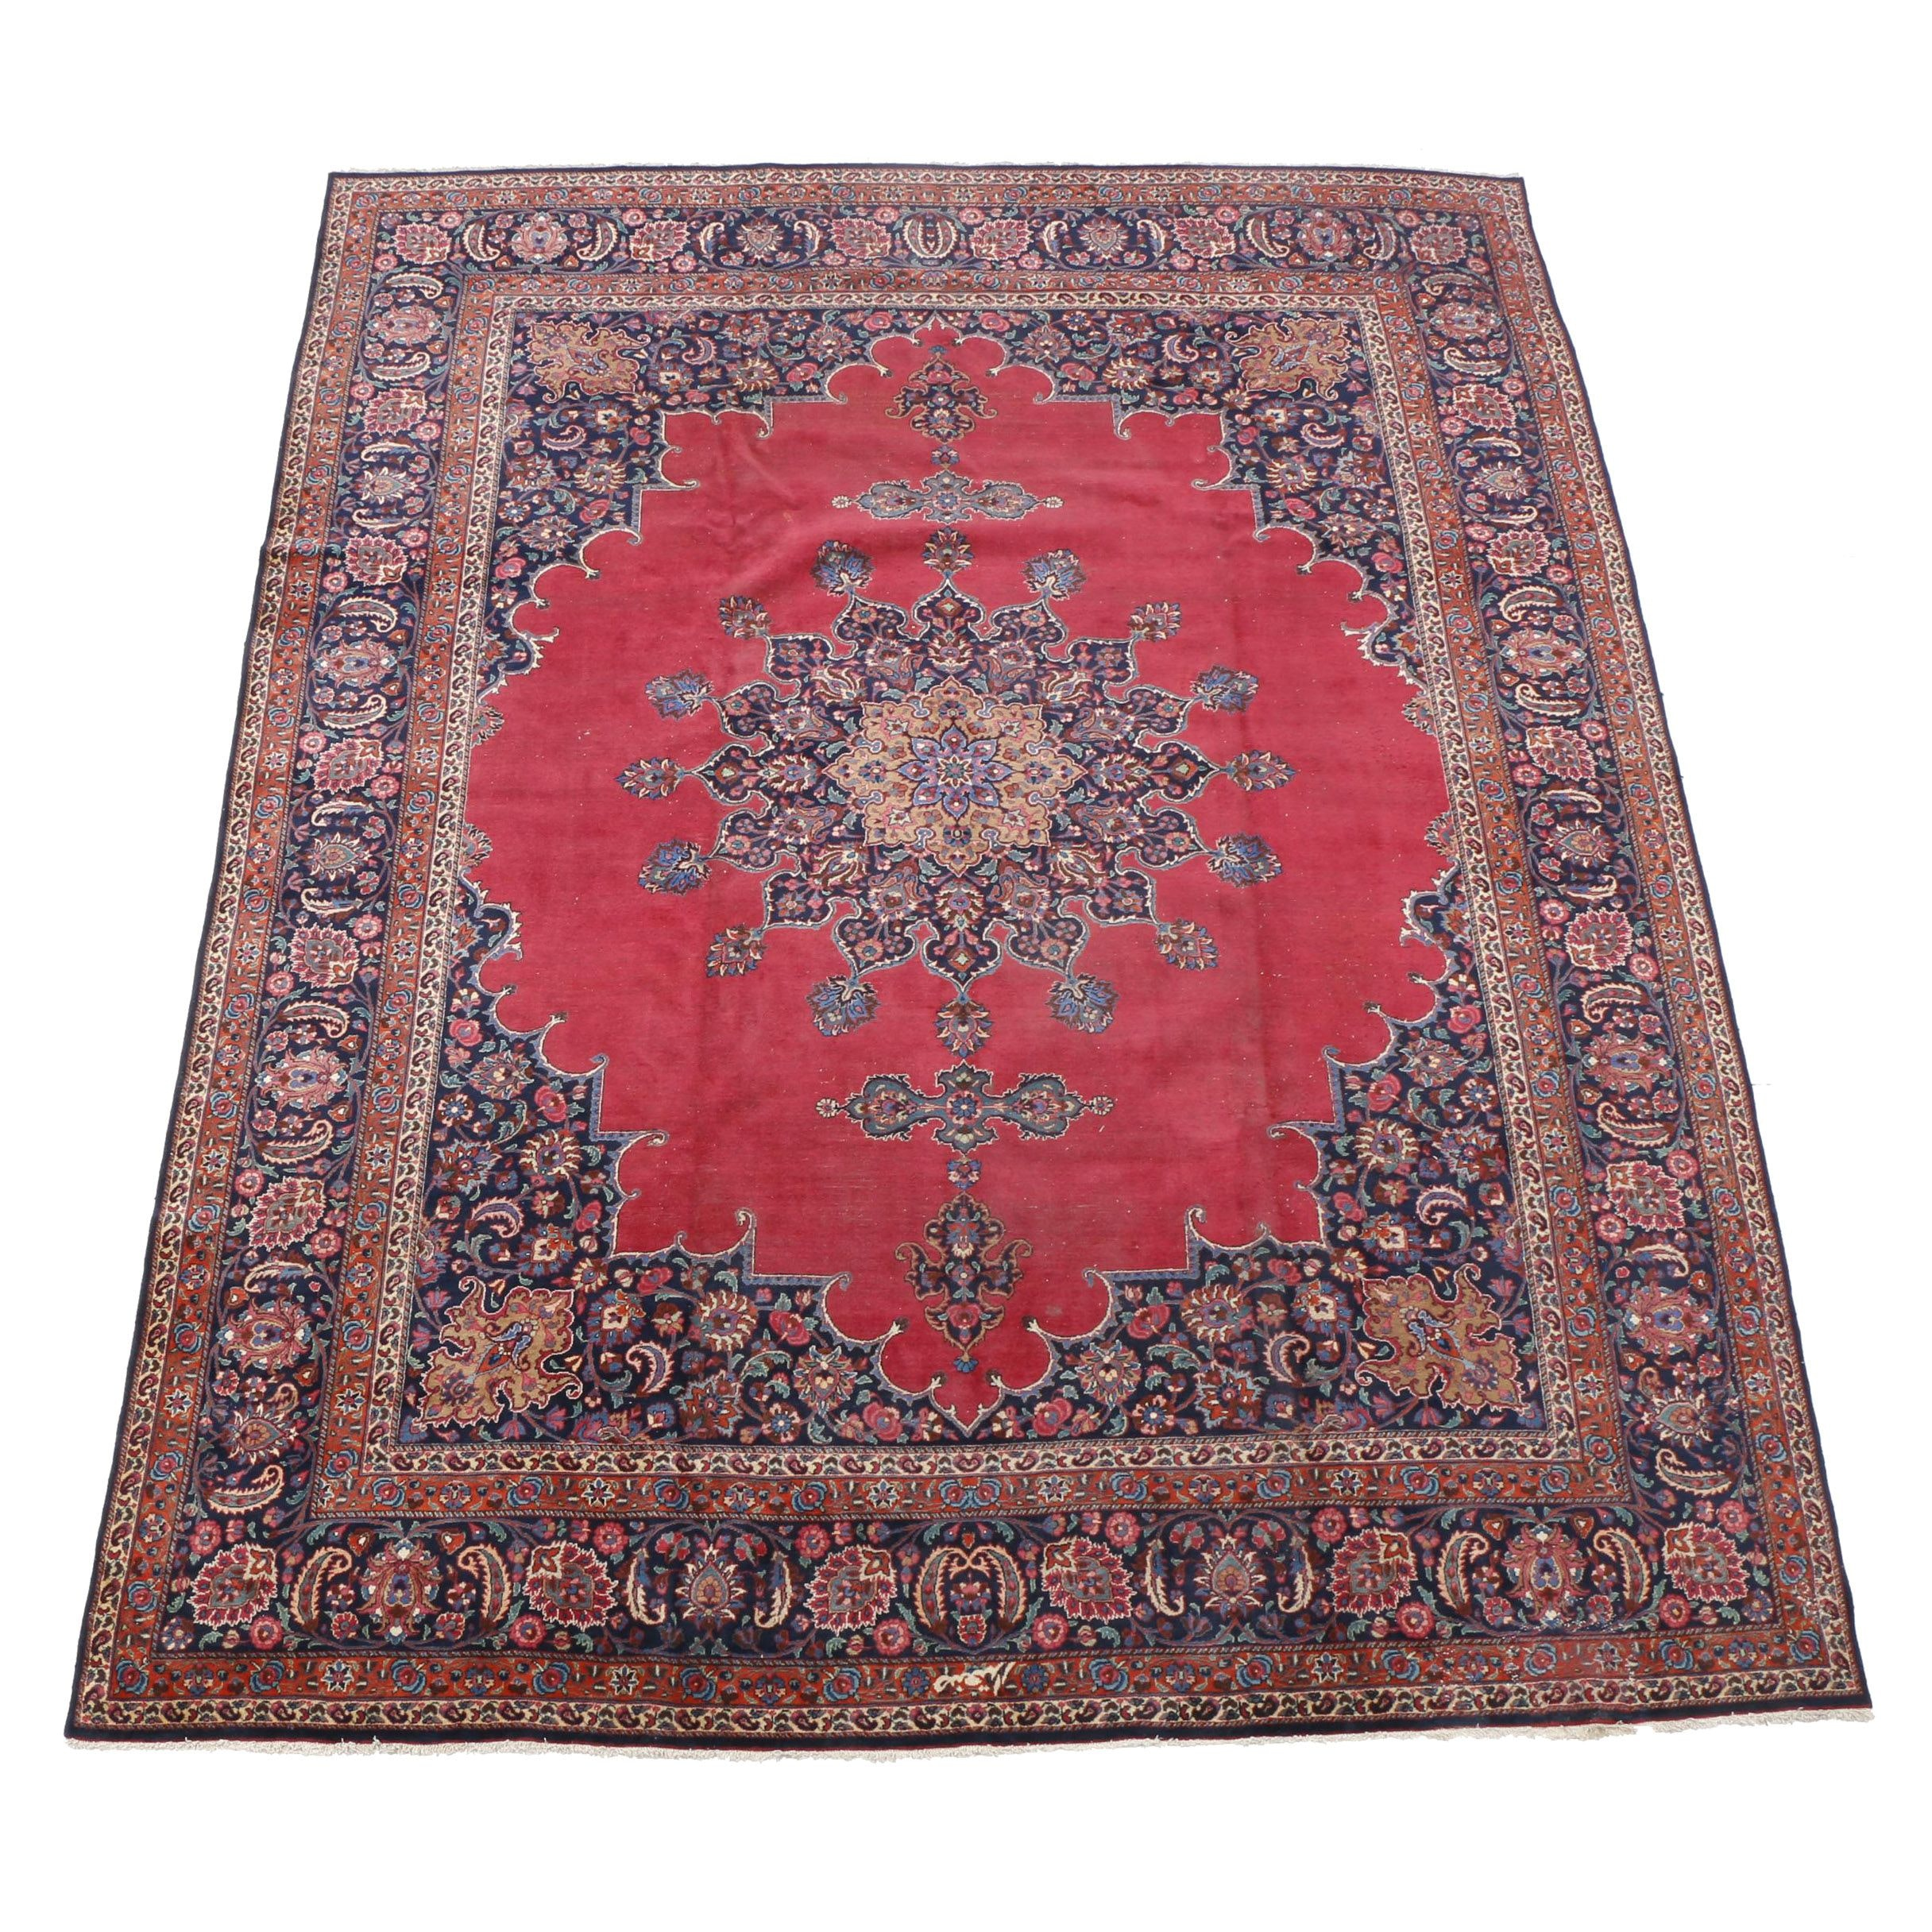 Hand-Knotted Inscribed Persian Afshari Bijar Wool Palace Sized Rug